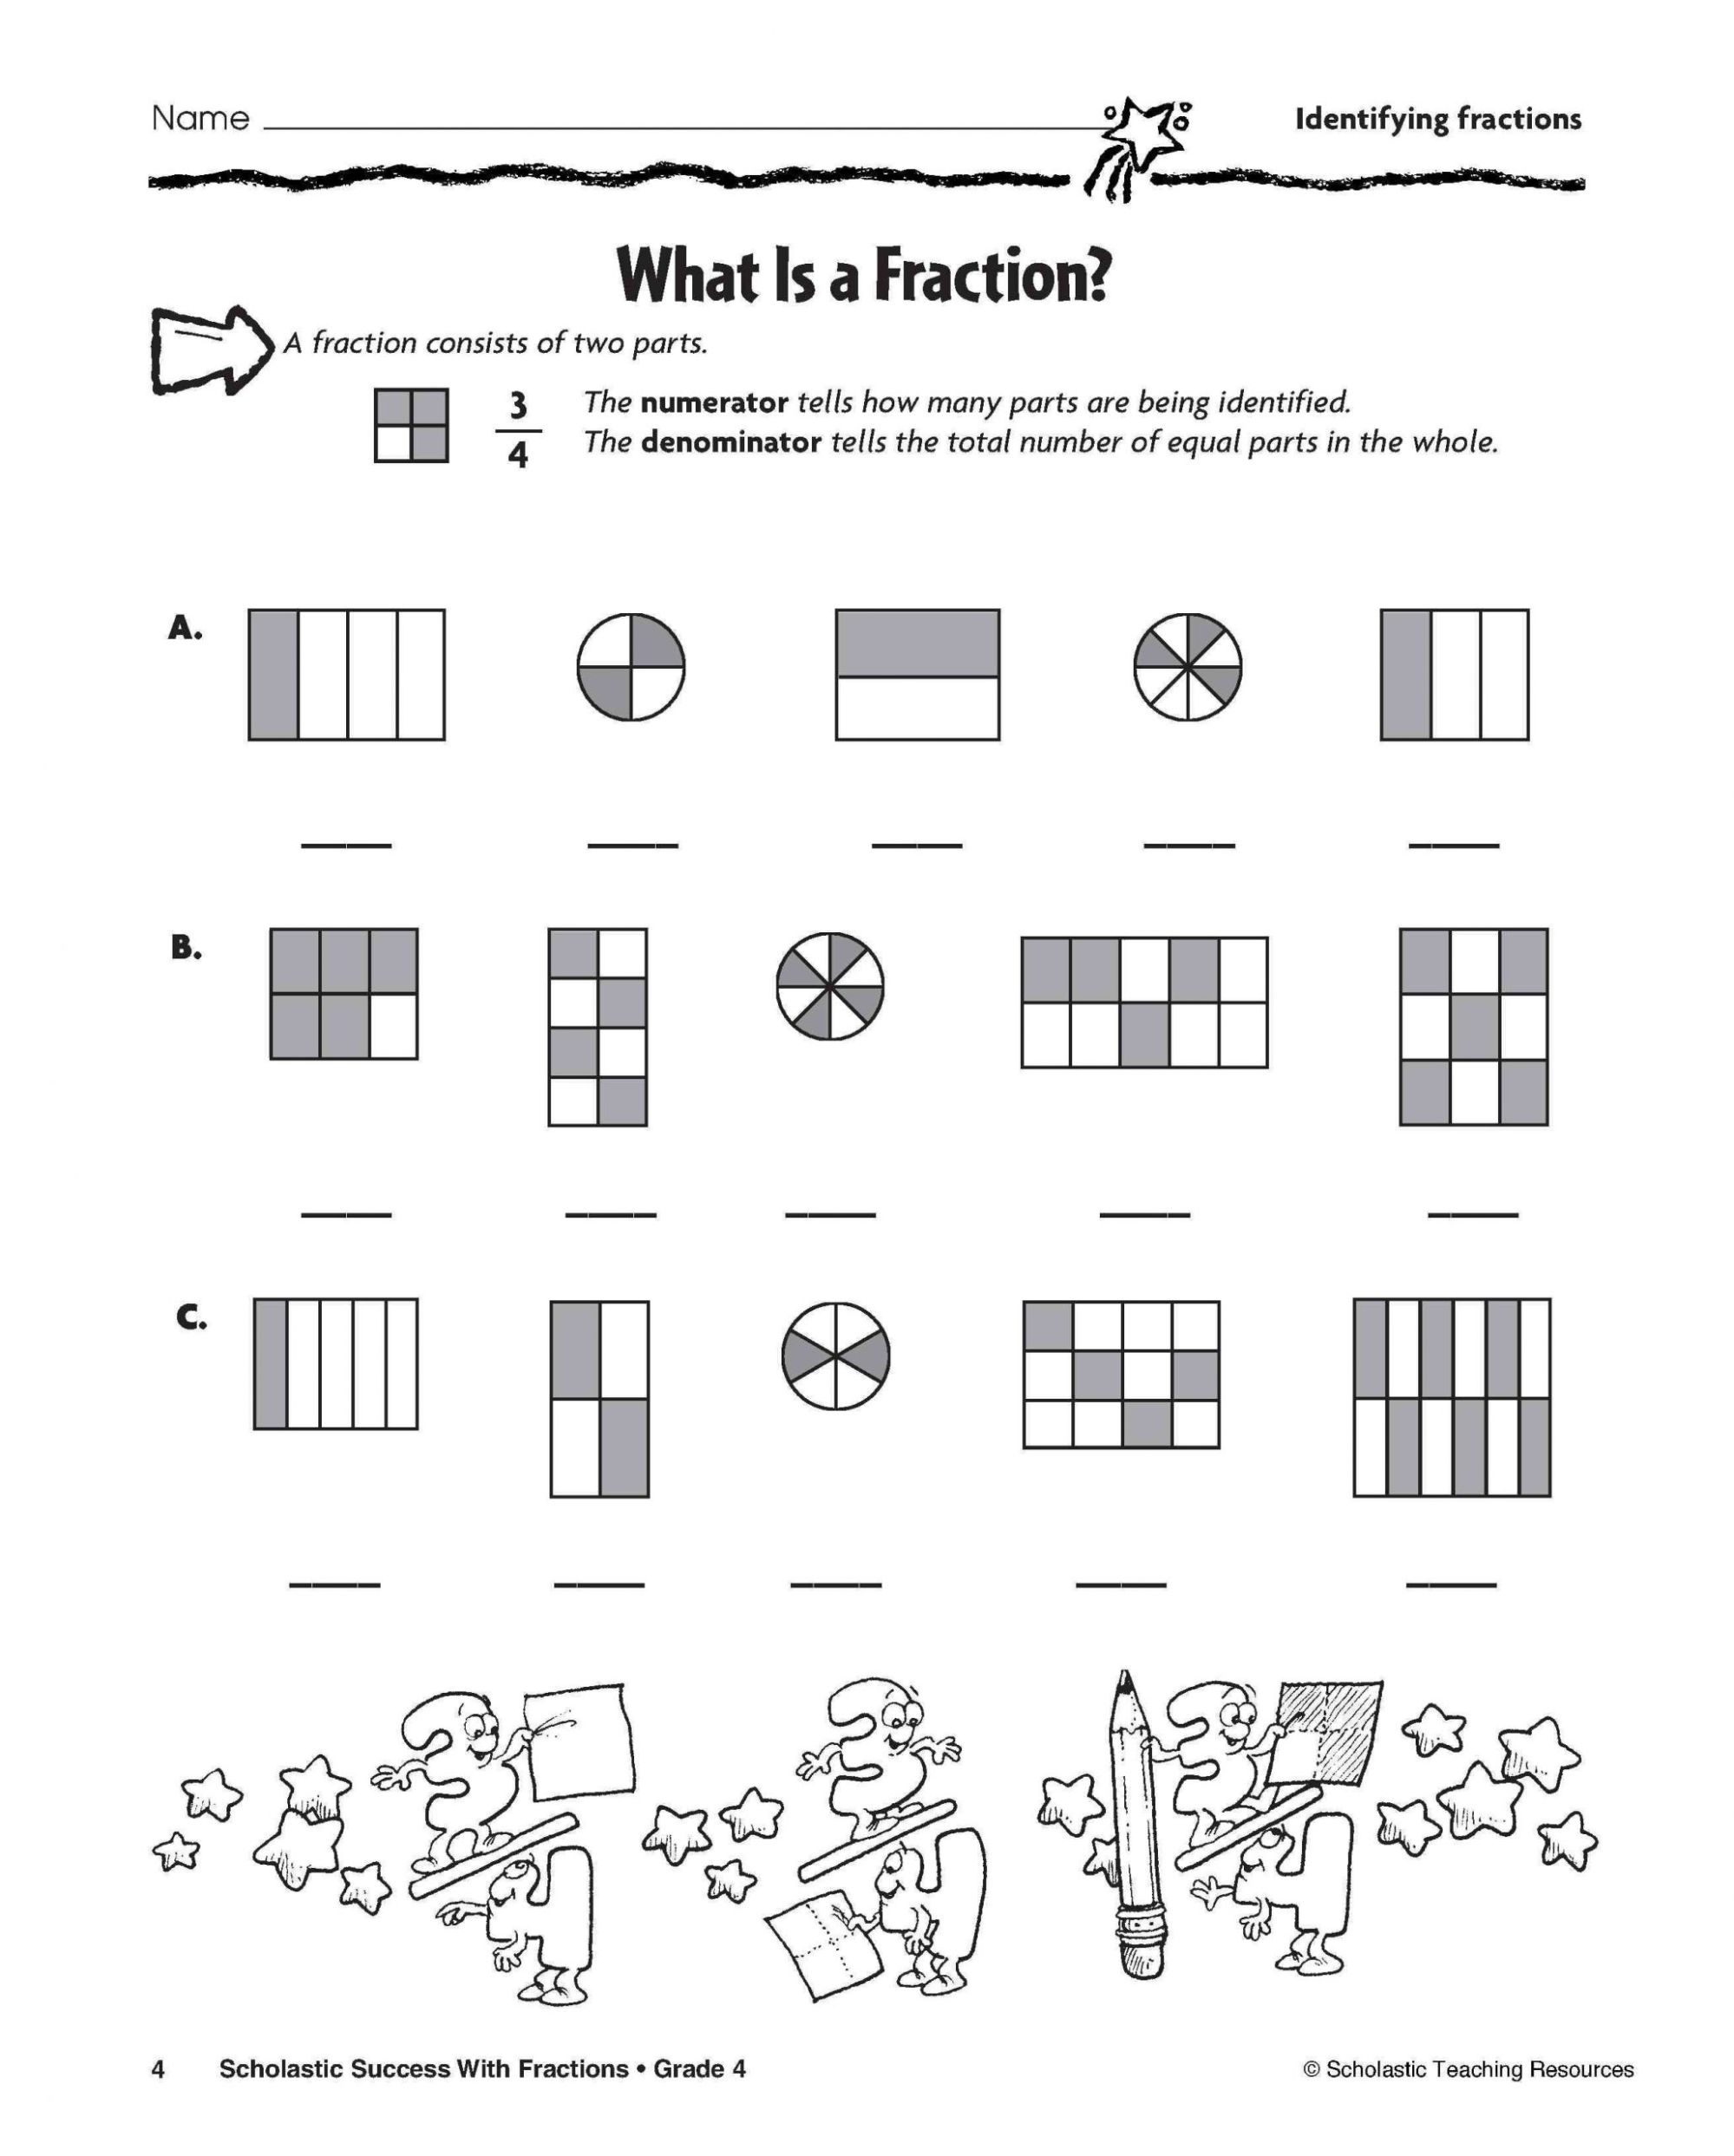 hight resolution of 4 Free Math Worksheets Third Grade 3 Fractions and Decimals Subtracting  Fractions Like Denominators - apocalomegaproductions.com